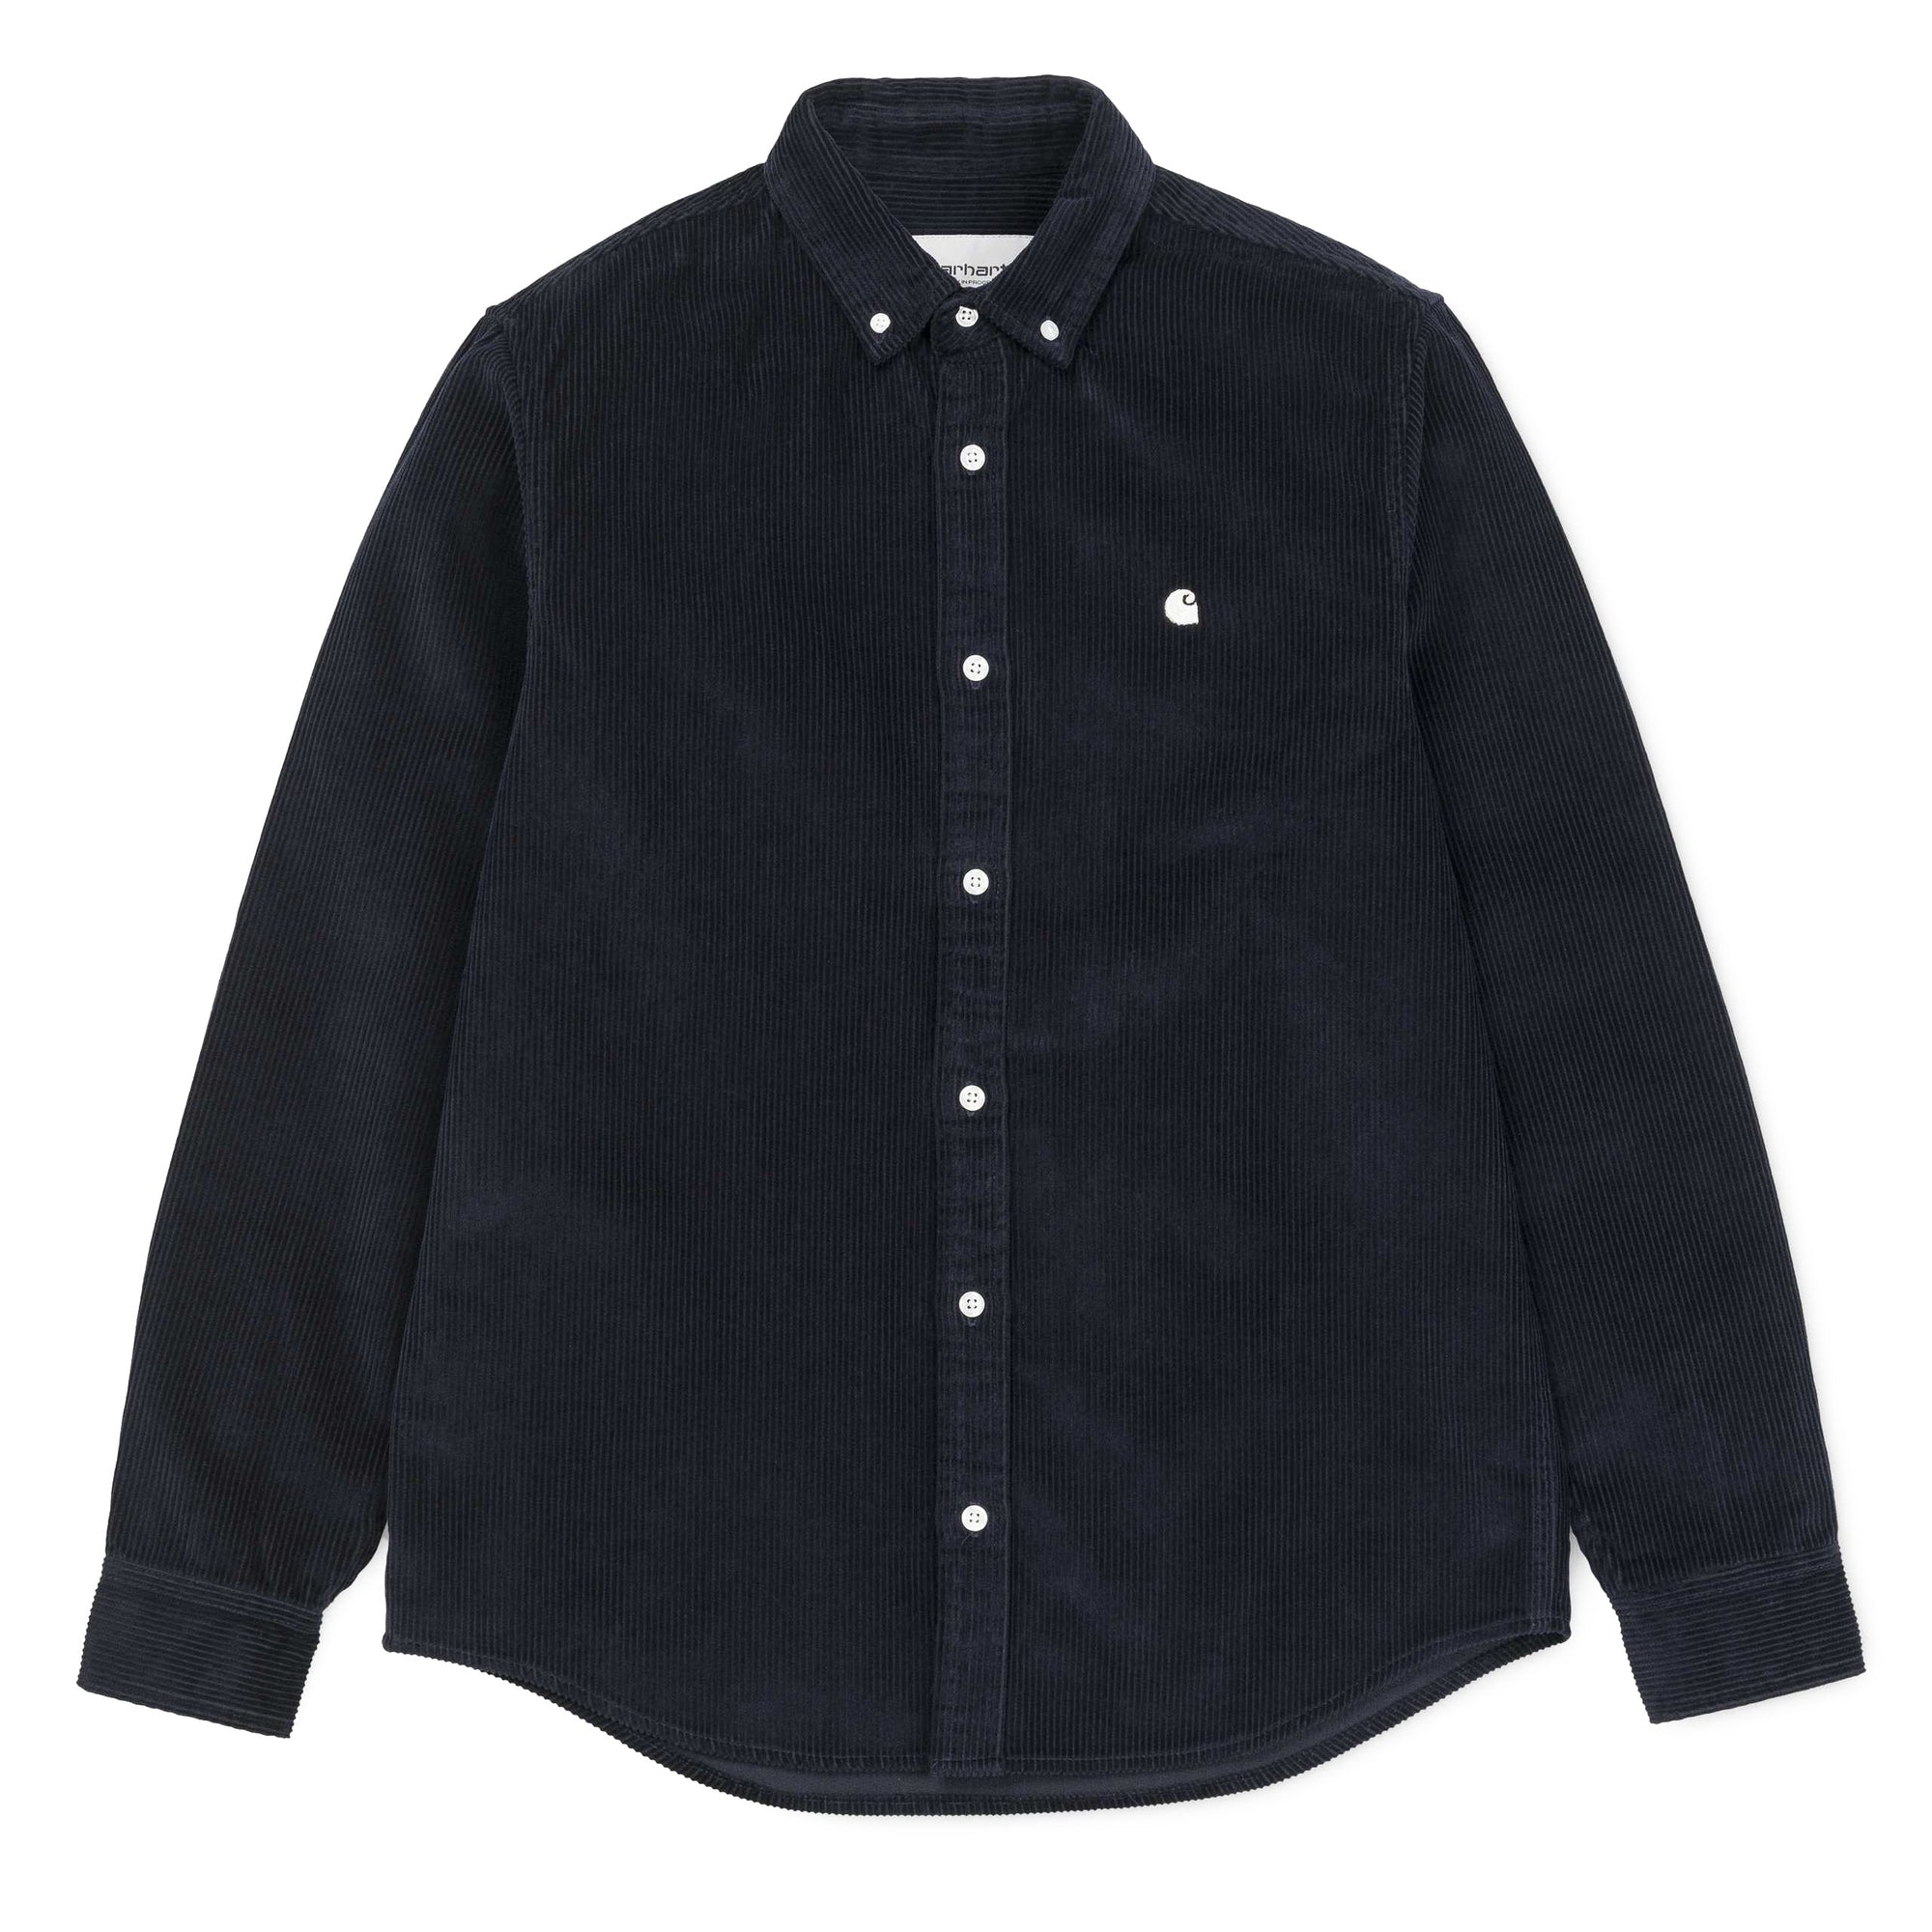 Carhartt WIP Madison Cord Shirt: Dark Navy / Wax - The Union Project